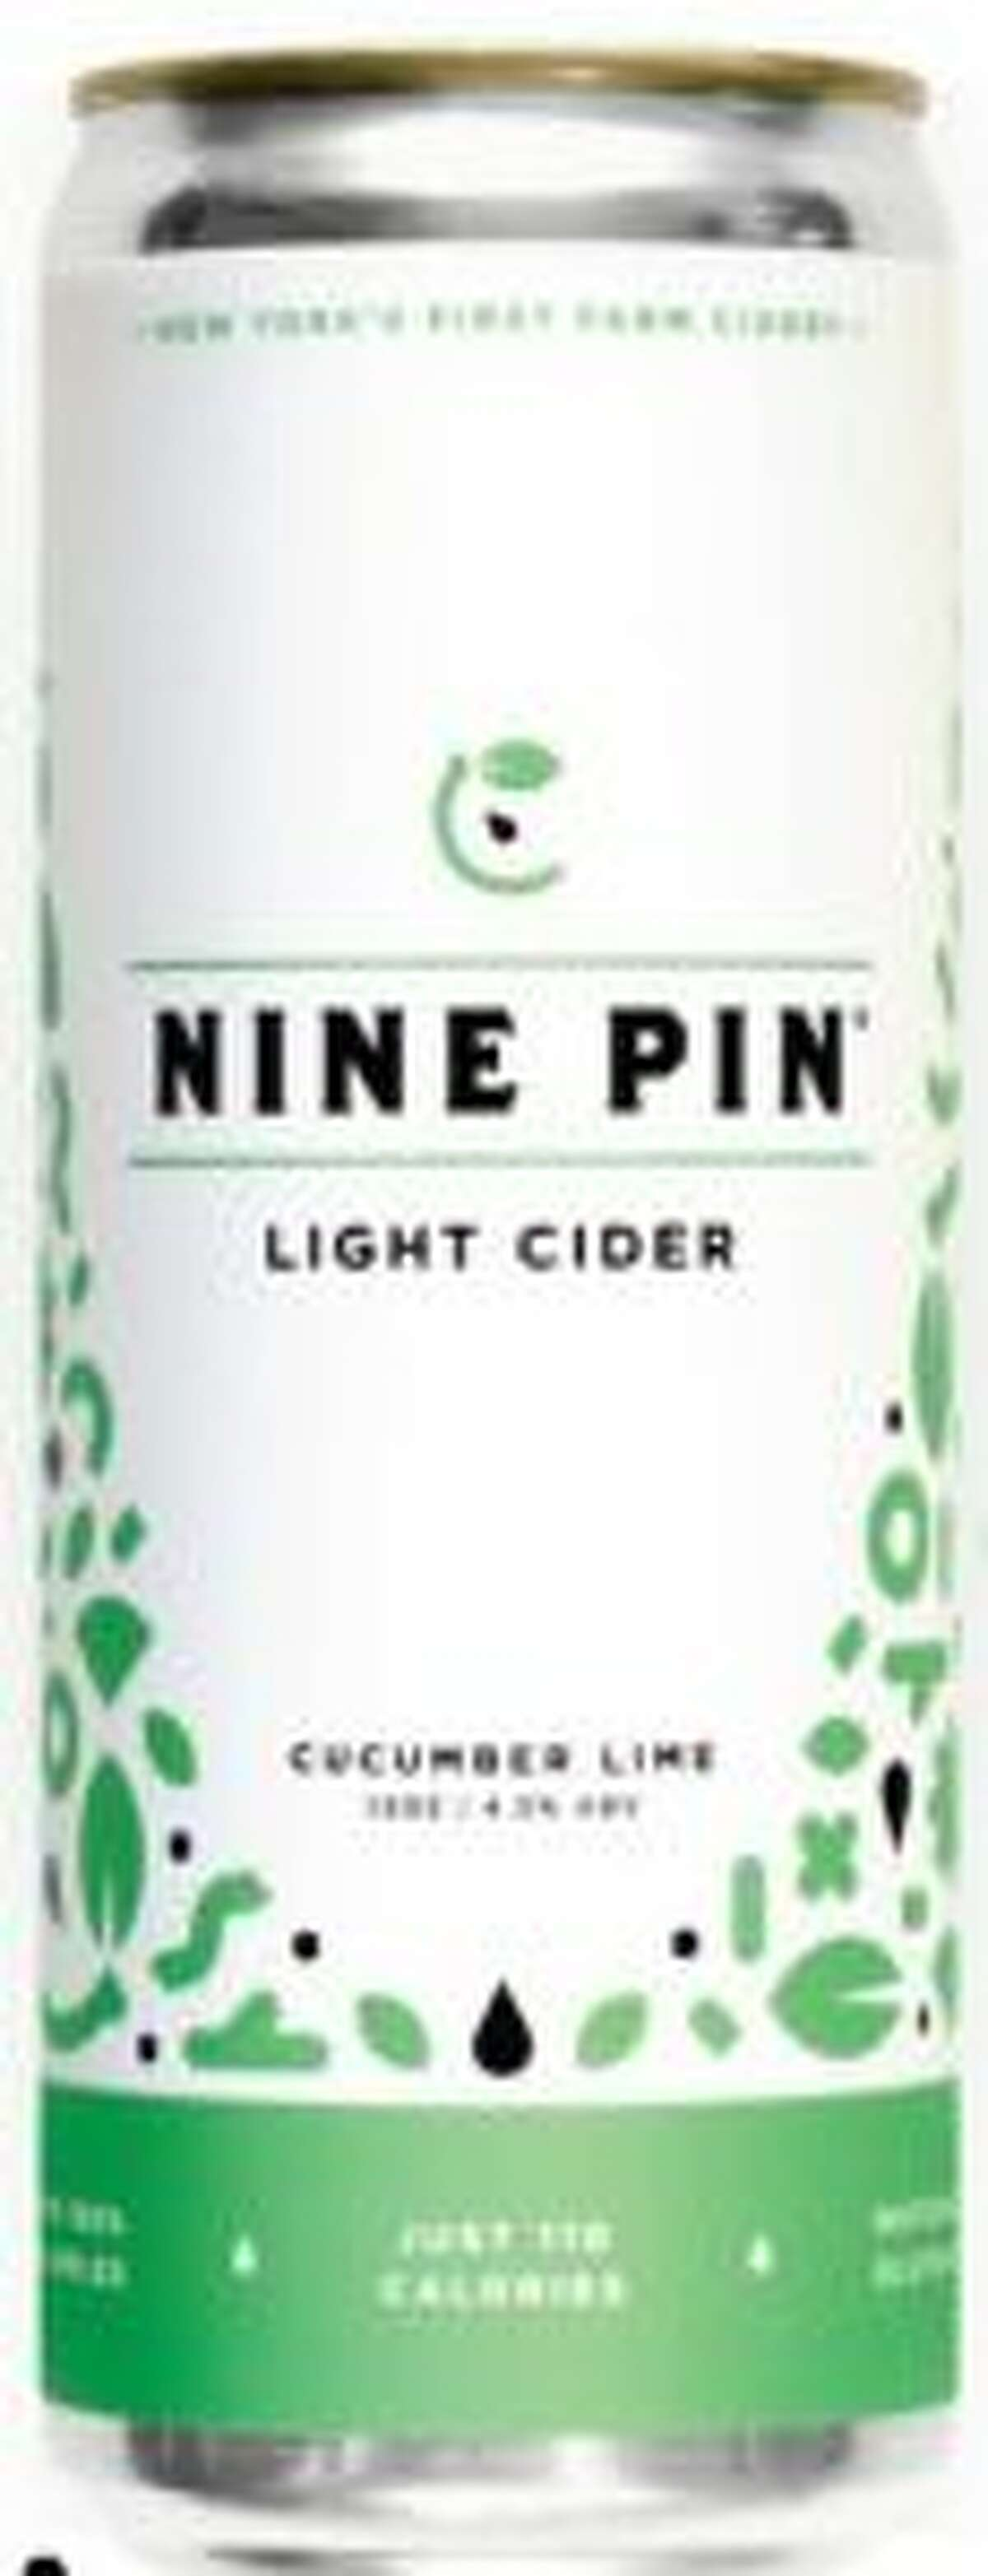 Nine Pin Cider Works in Albany introduces its first light cider, a lime- and cucumber-flavored beverage that has about 30 percent fewer calories and alcohol than its Signature Cider.